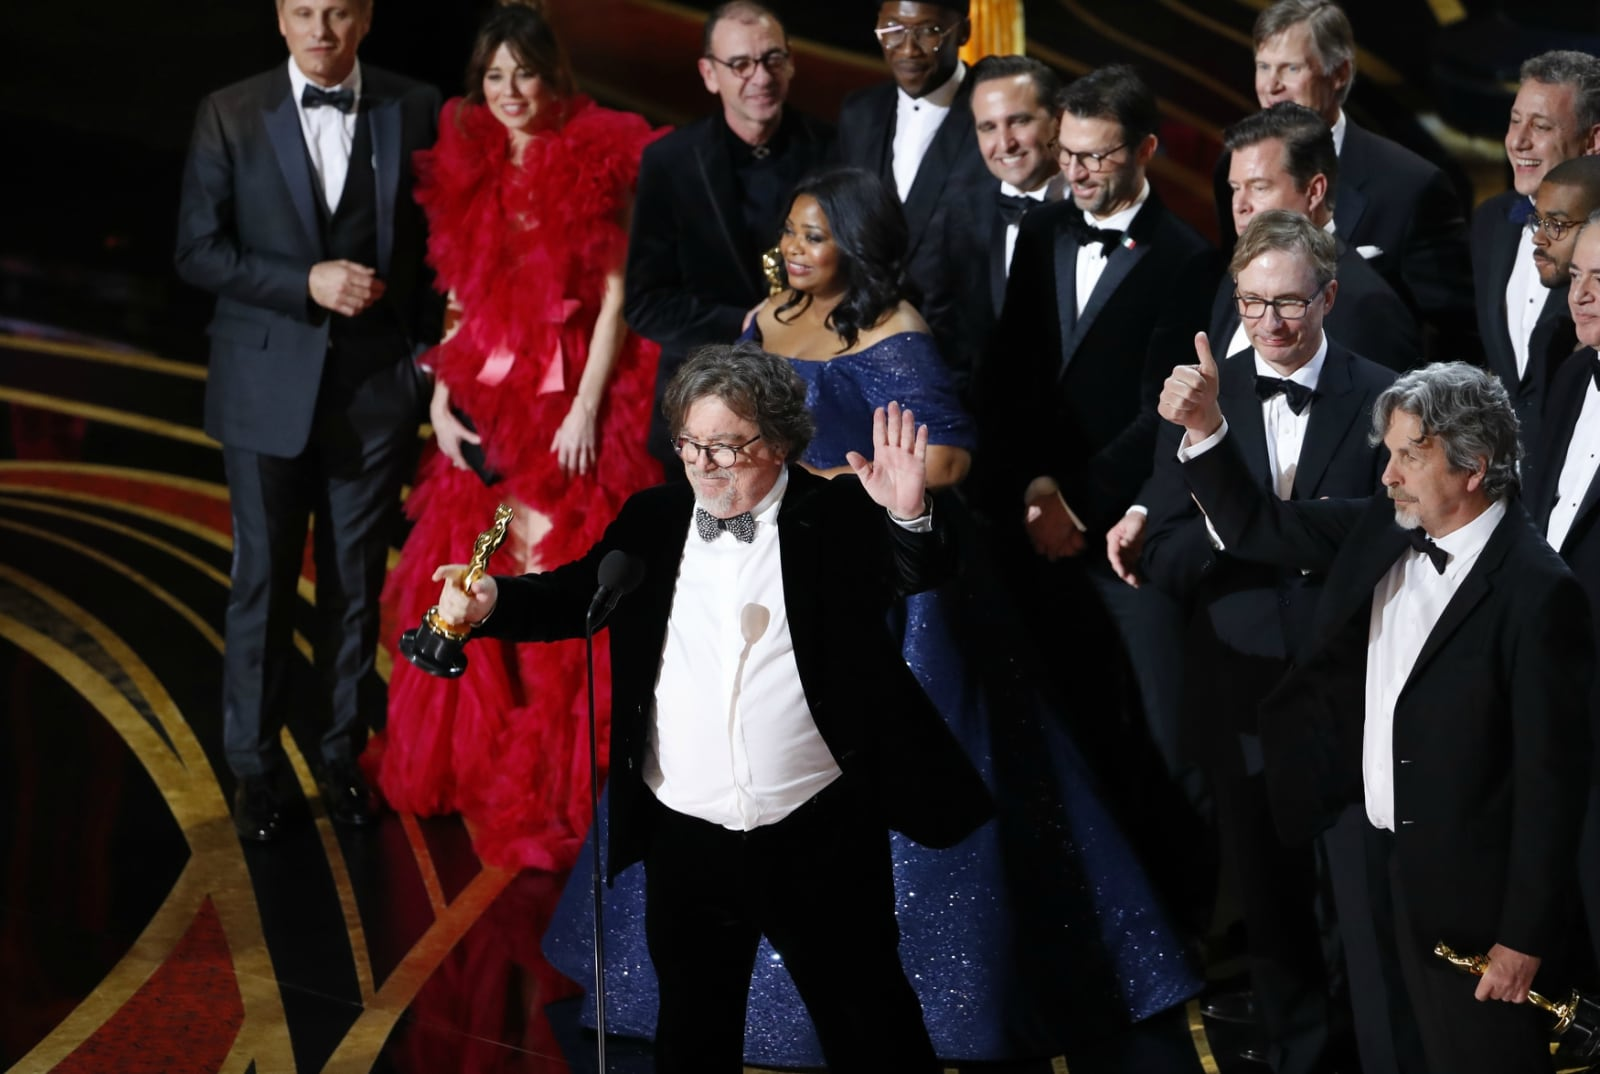 91st Academy Awards - Oscars Show - Hollywood, Los Angeles, California, US, February 24, 2019. Peter Farrelly accepts the Best Picture award for